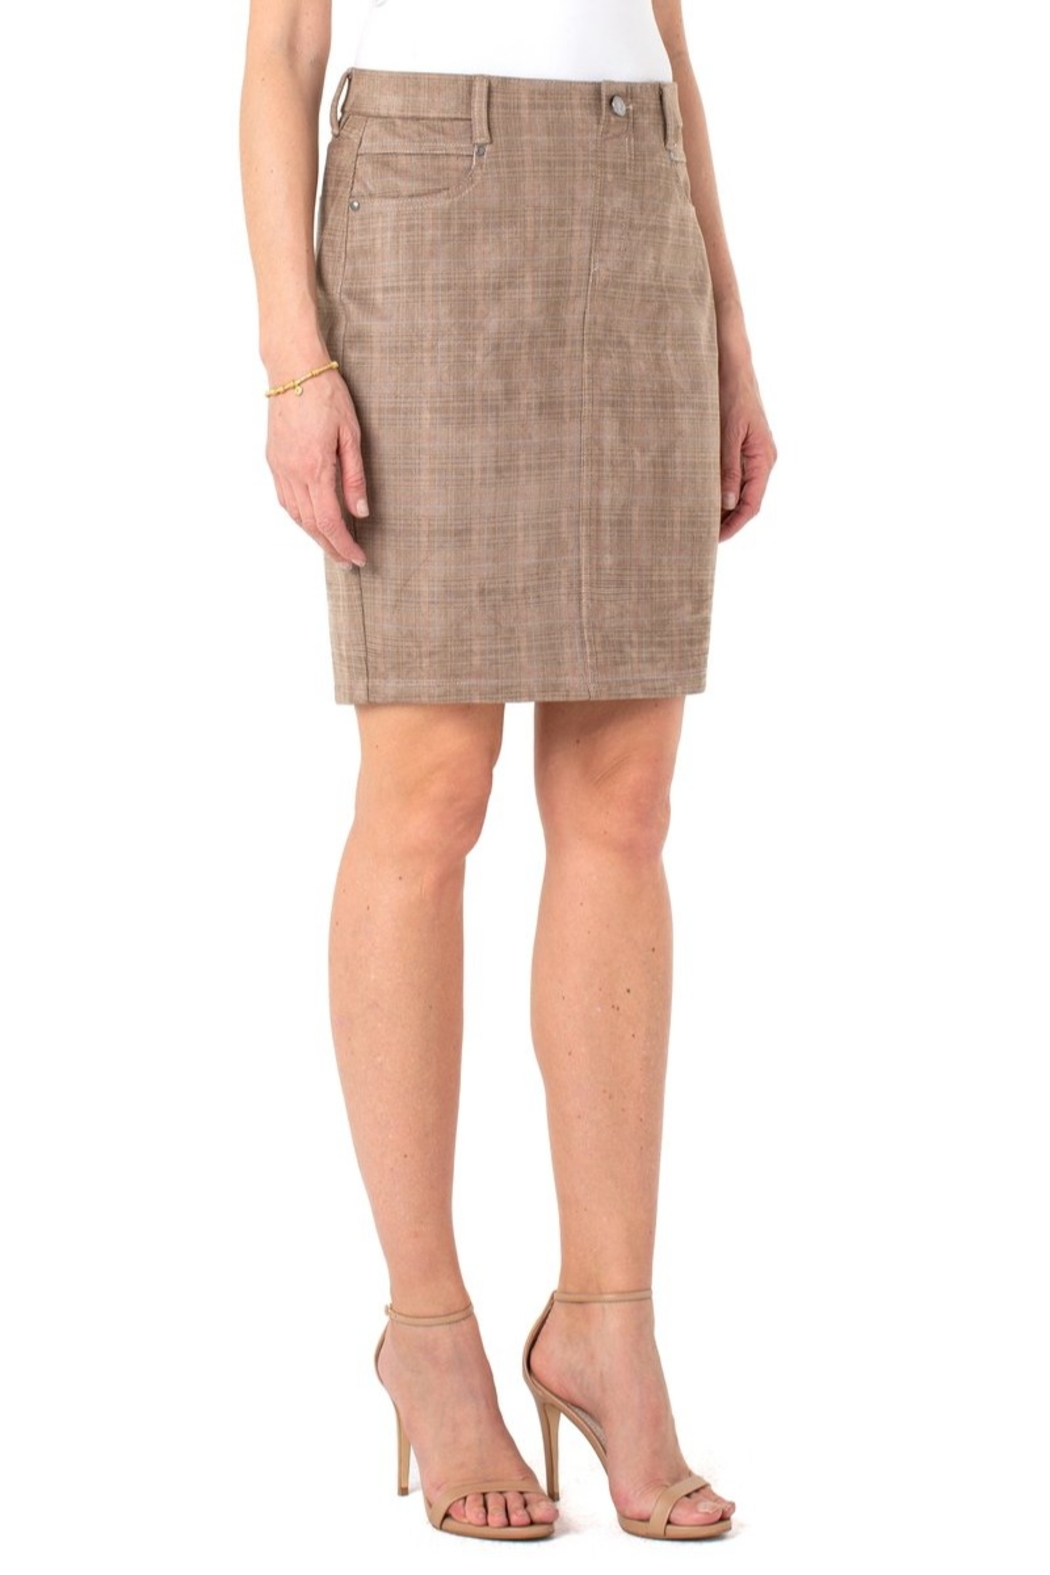 Liverpool  Our faux suede Gia Glider skirt - Main Image